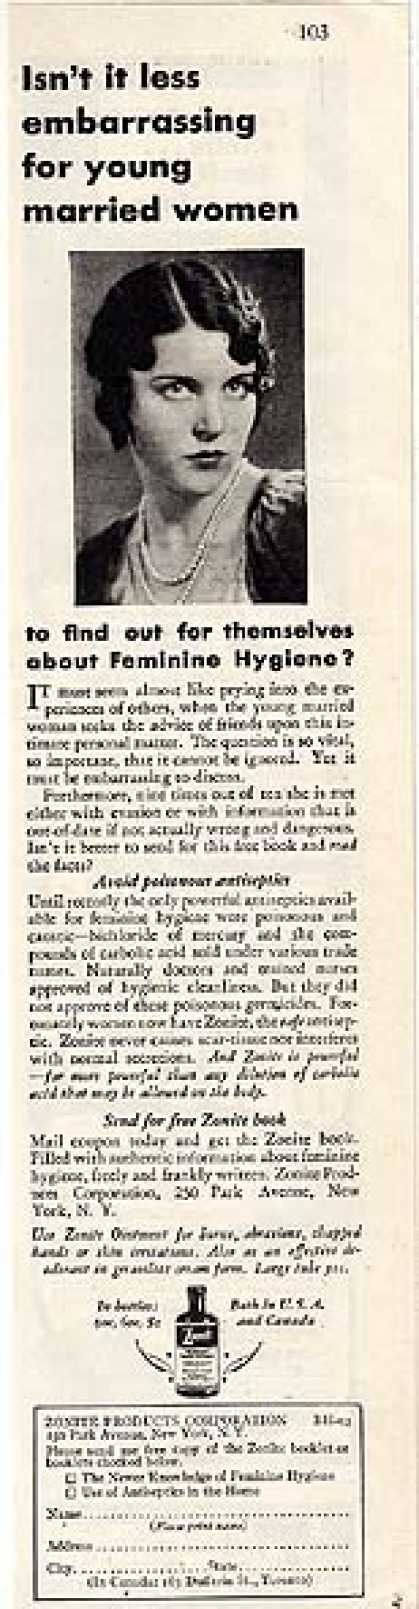 Zonite's safe antiseptic for feminine hygiene (1930)